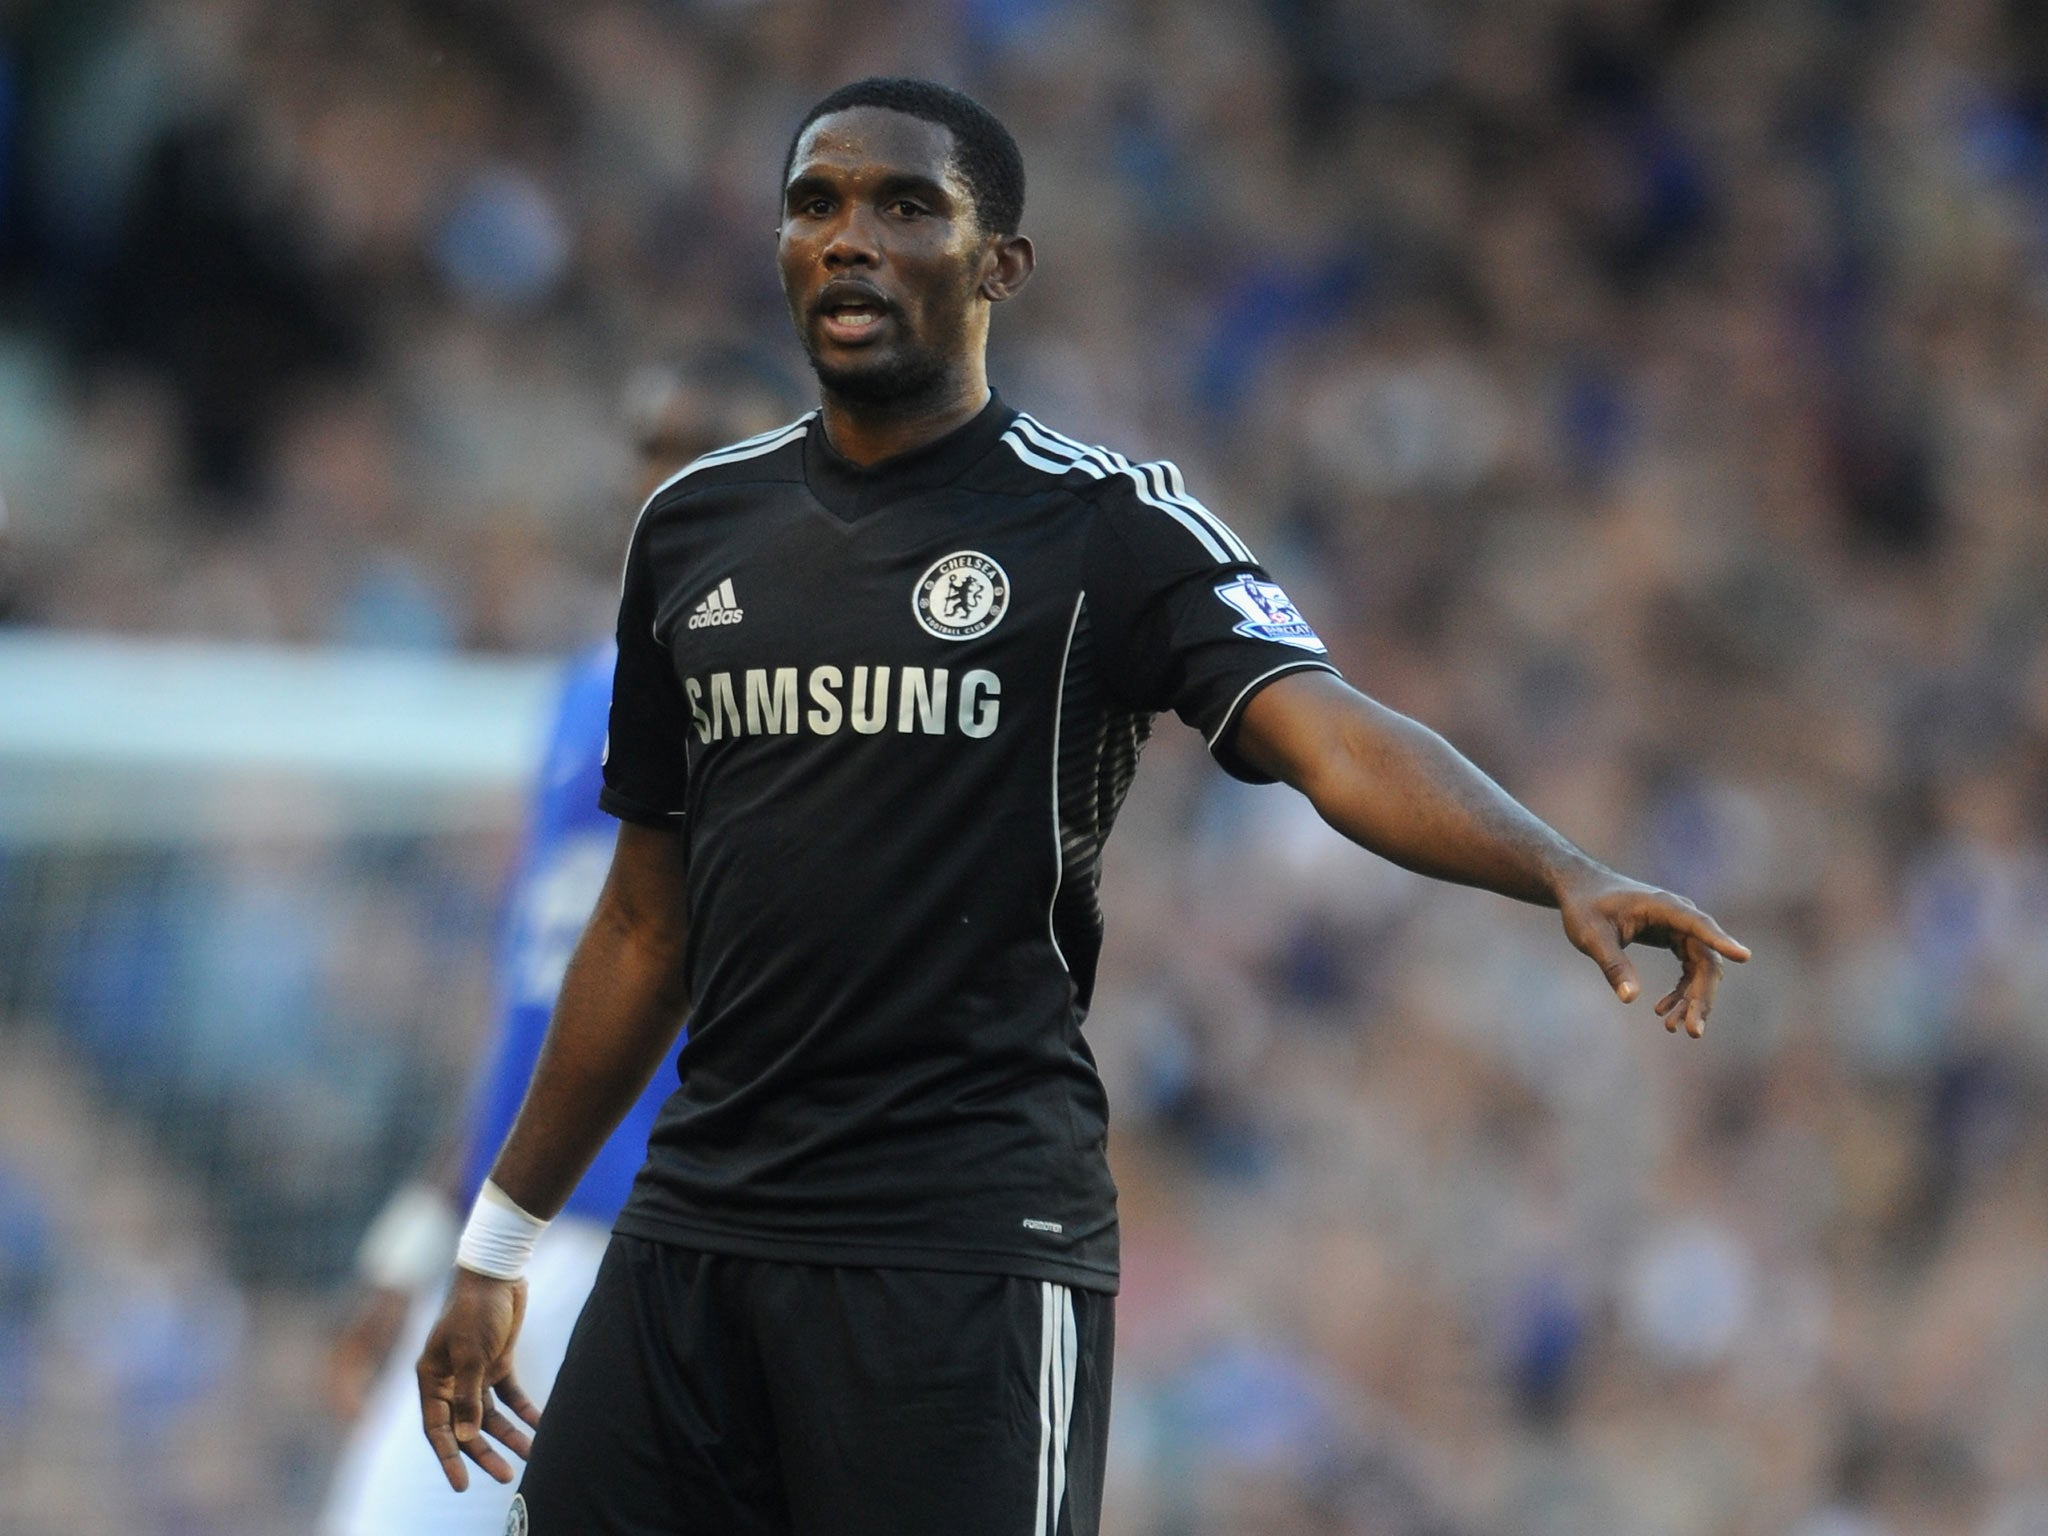 Samuel Eto o admits he must adapt to the Premier League after slow